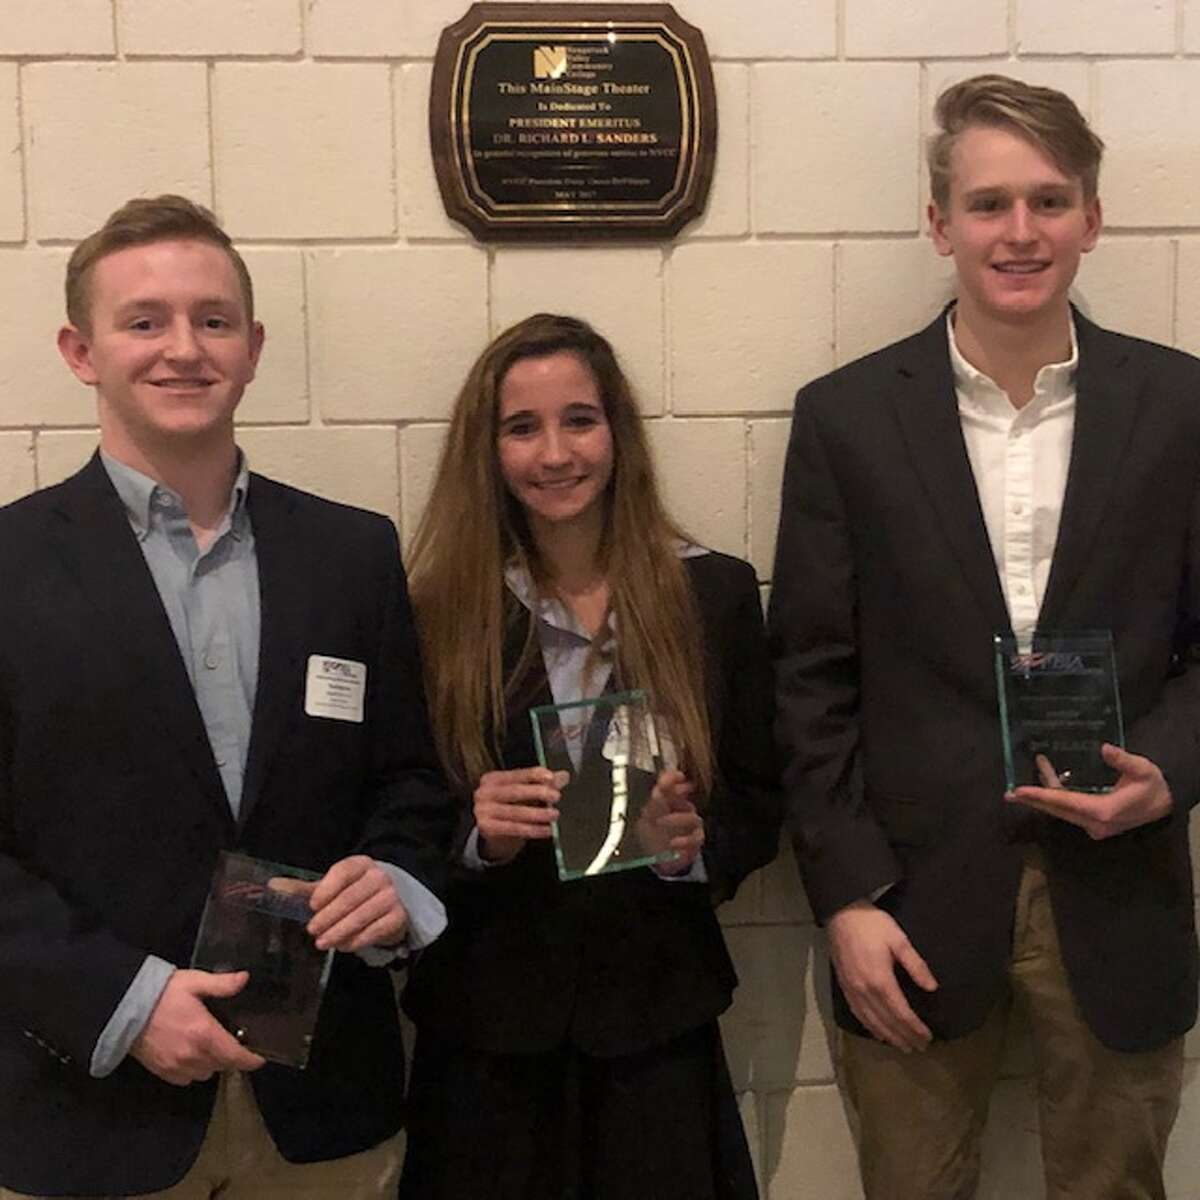 Ryan Bogursky, Alyssa Maiolo, Heston Pinard won second place in sports and entertainment marketing at the Future Business Leaders of America conference at Naugatuck Community College in Waterbury on March 12.